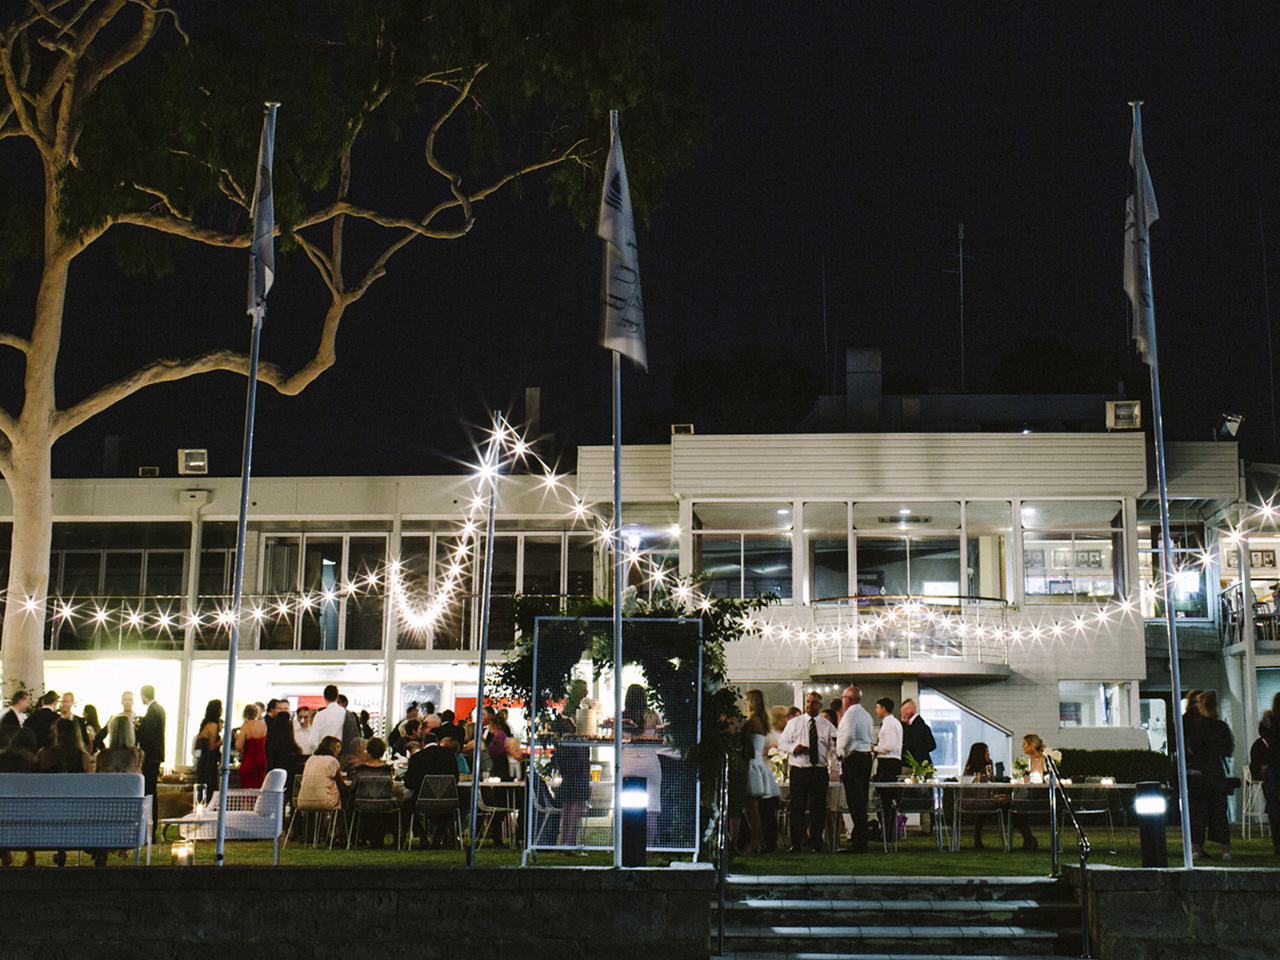 People Gathering Outside The Function Area Under A Tree With Tables, Chairs, String Lights And Flag Poles